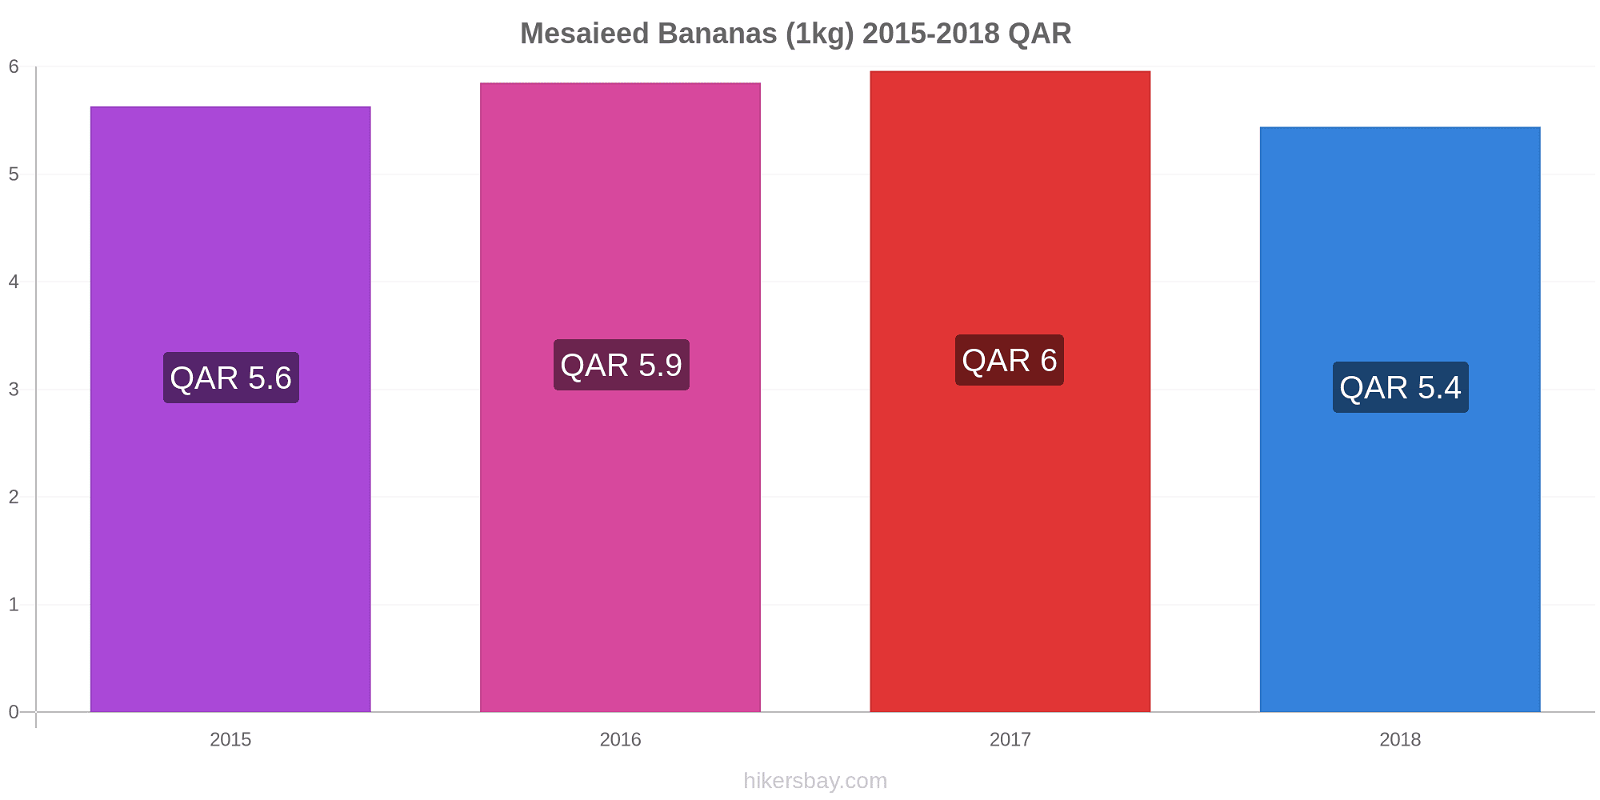 Mesaieed price changes Bananas (1kg) hikersbay.com